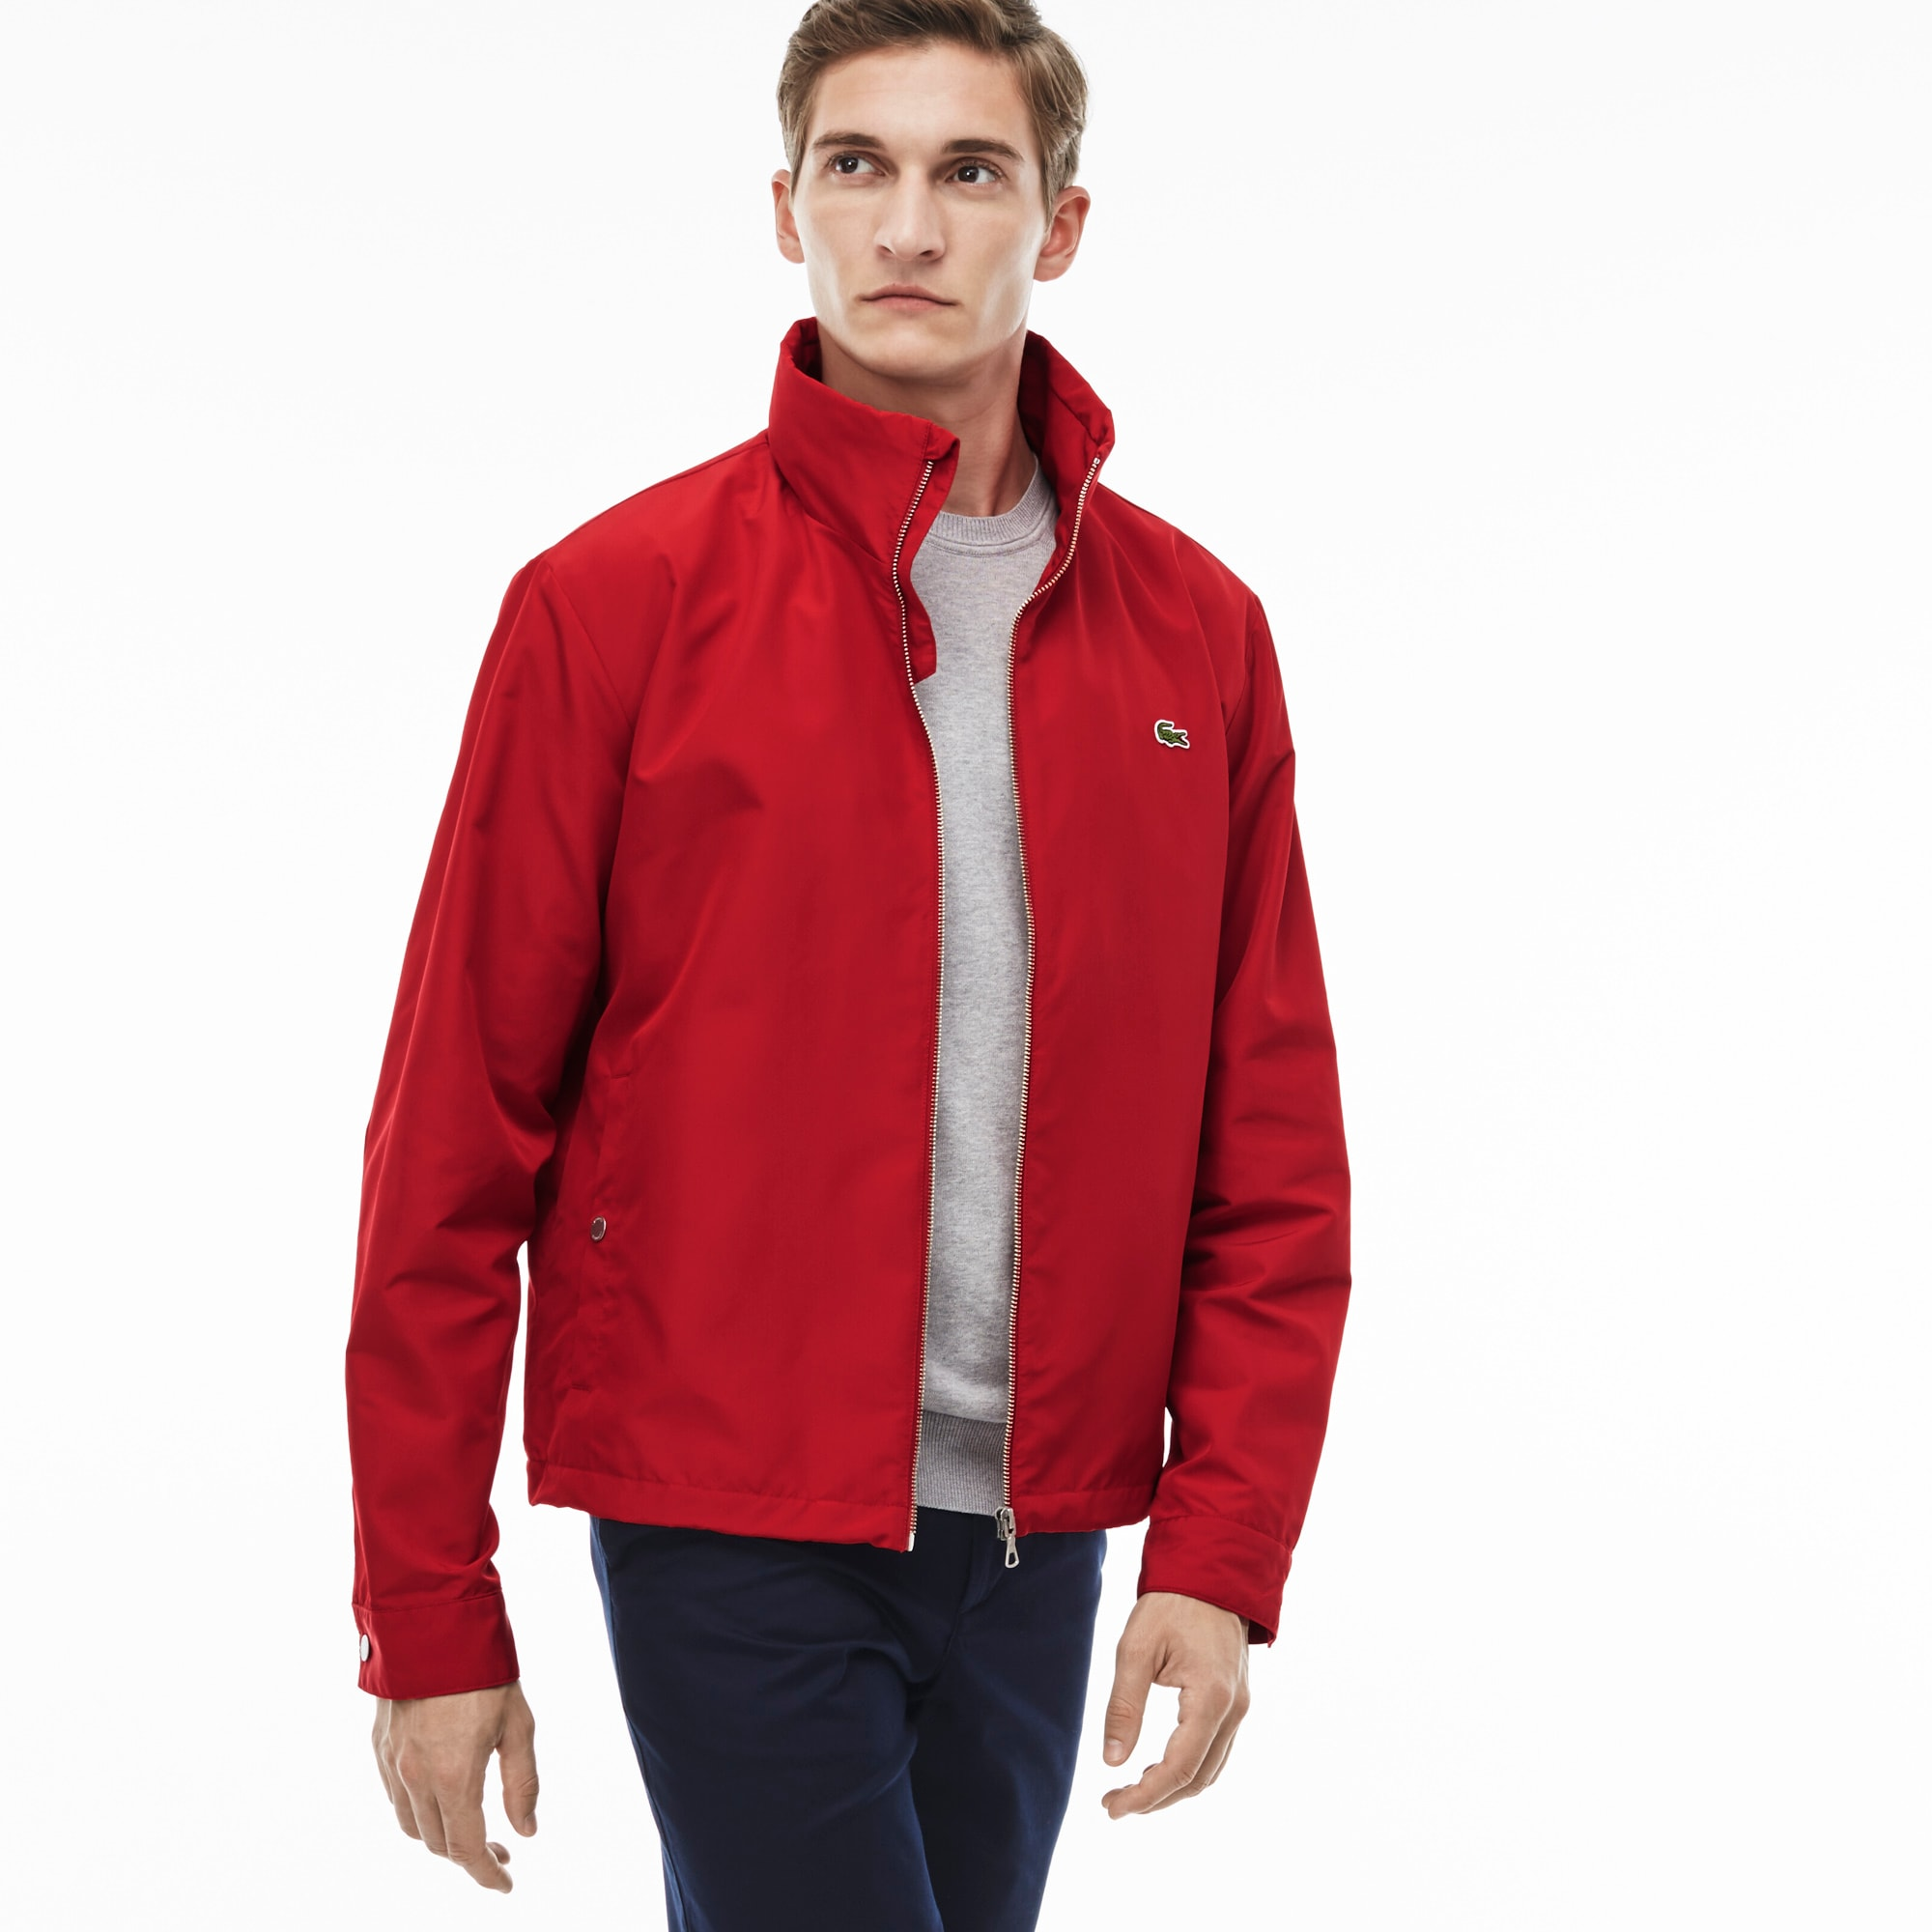 Men's Jackets and Coats on Sale | Outerwear | LACOSTE